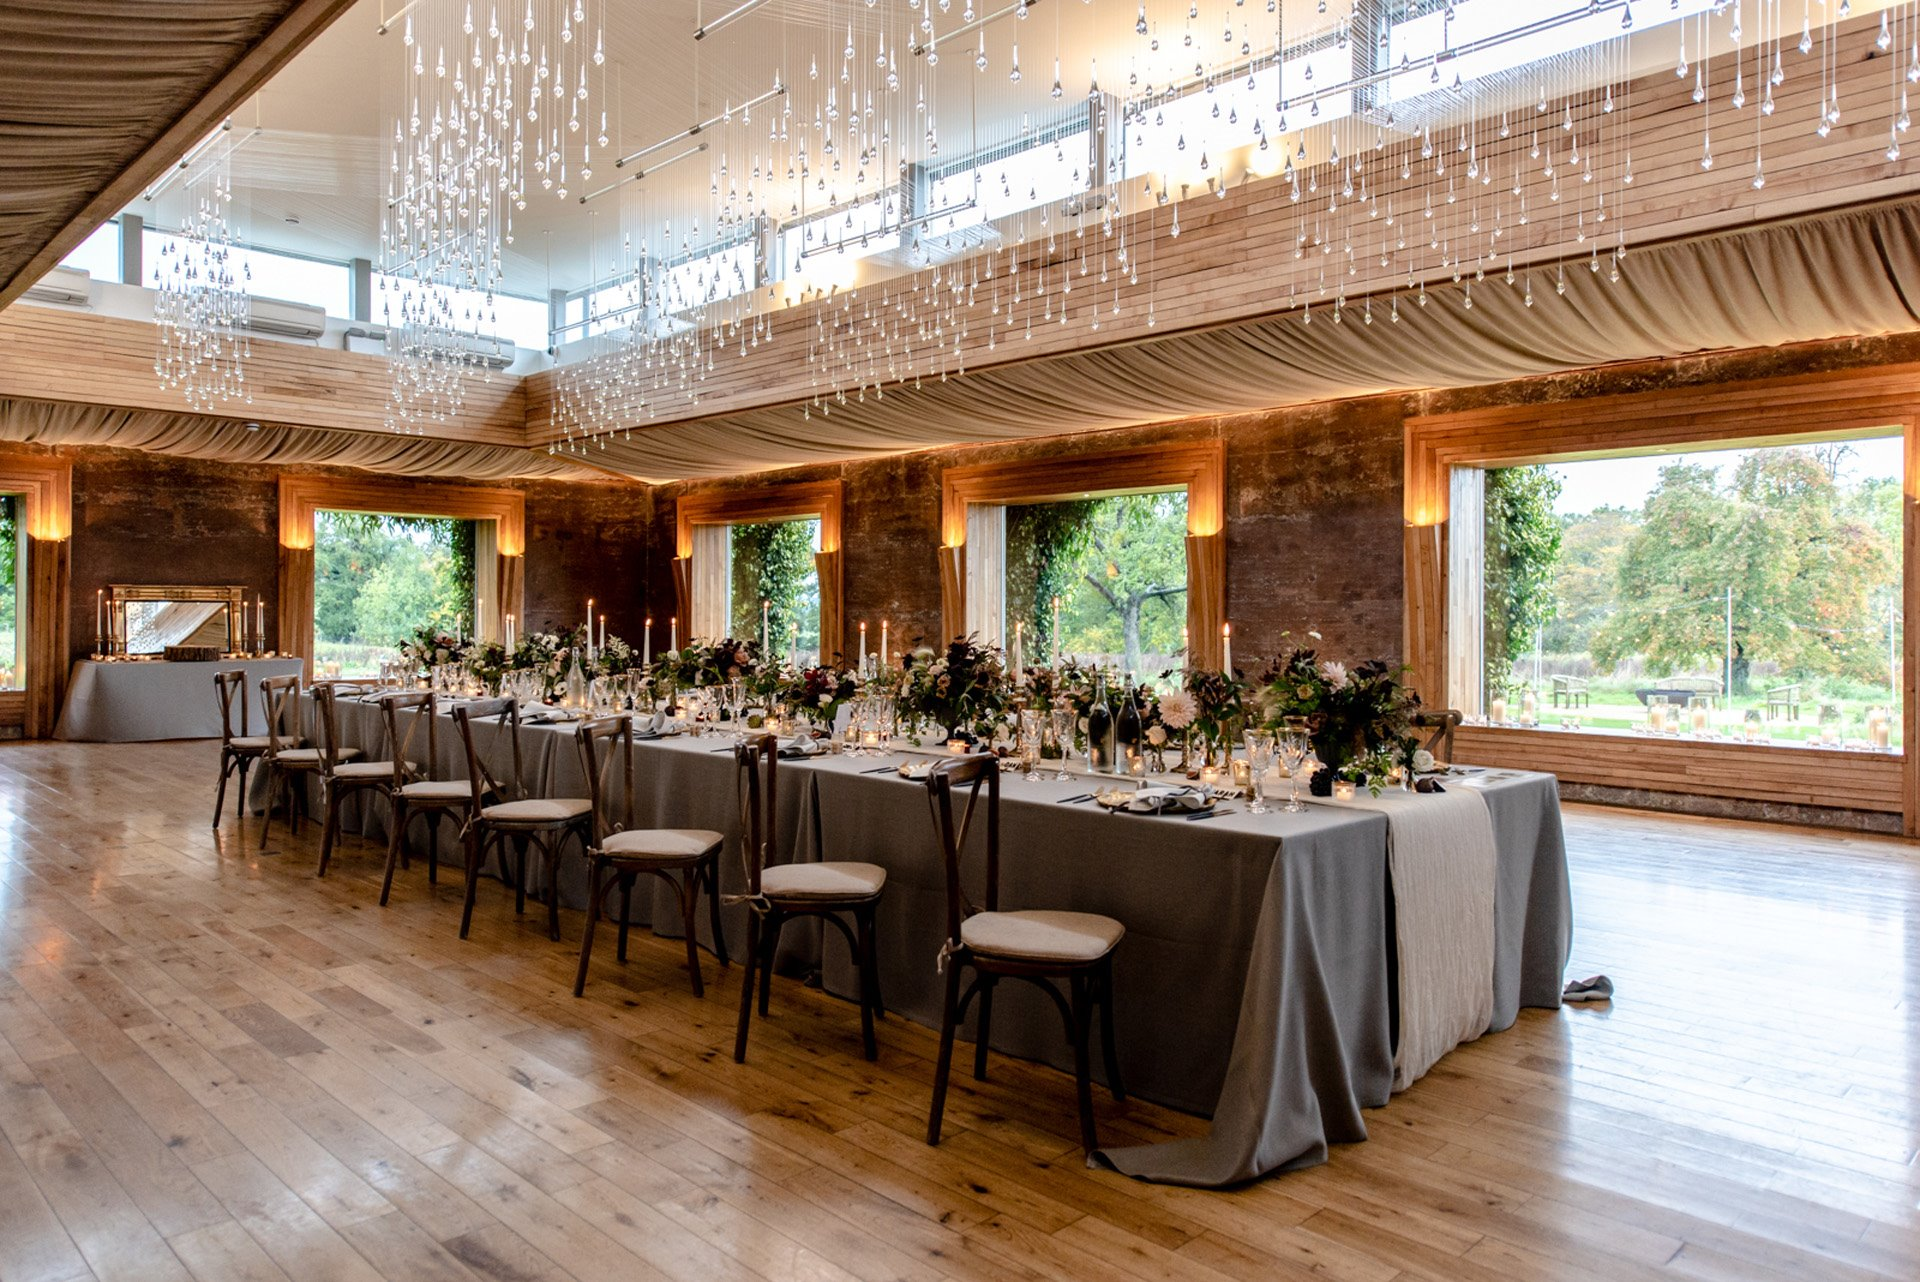 Micro wedding dinner in a beautiful candlelit covid safe wedding venue in cotswolds